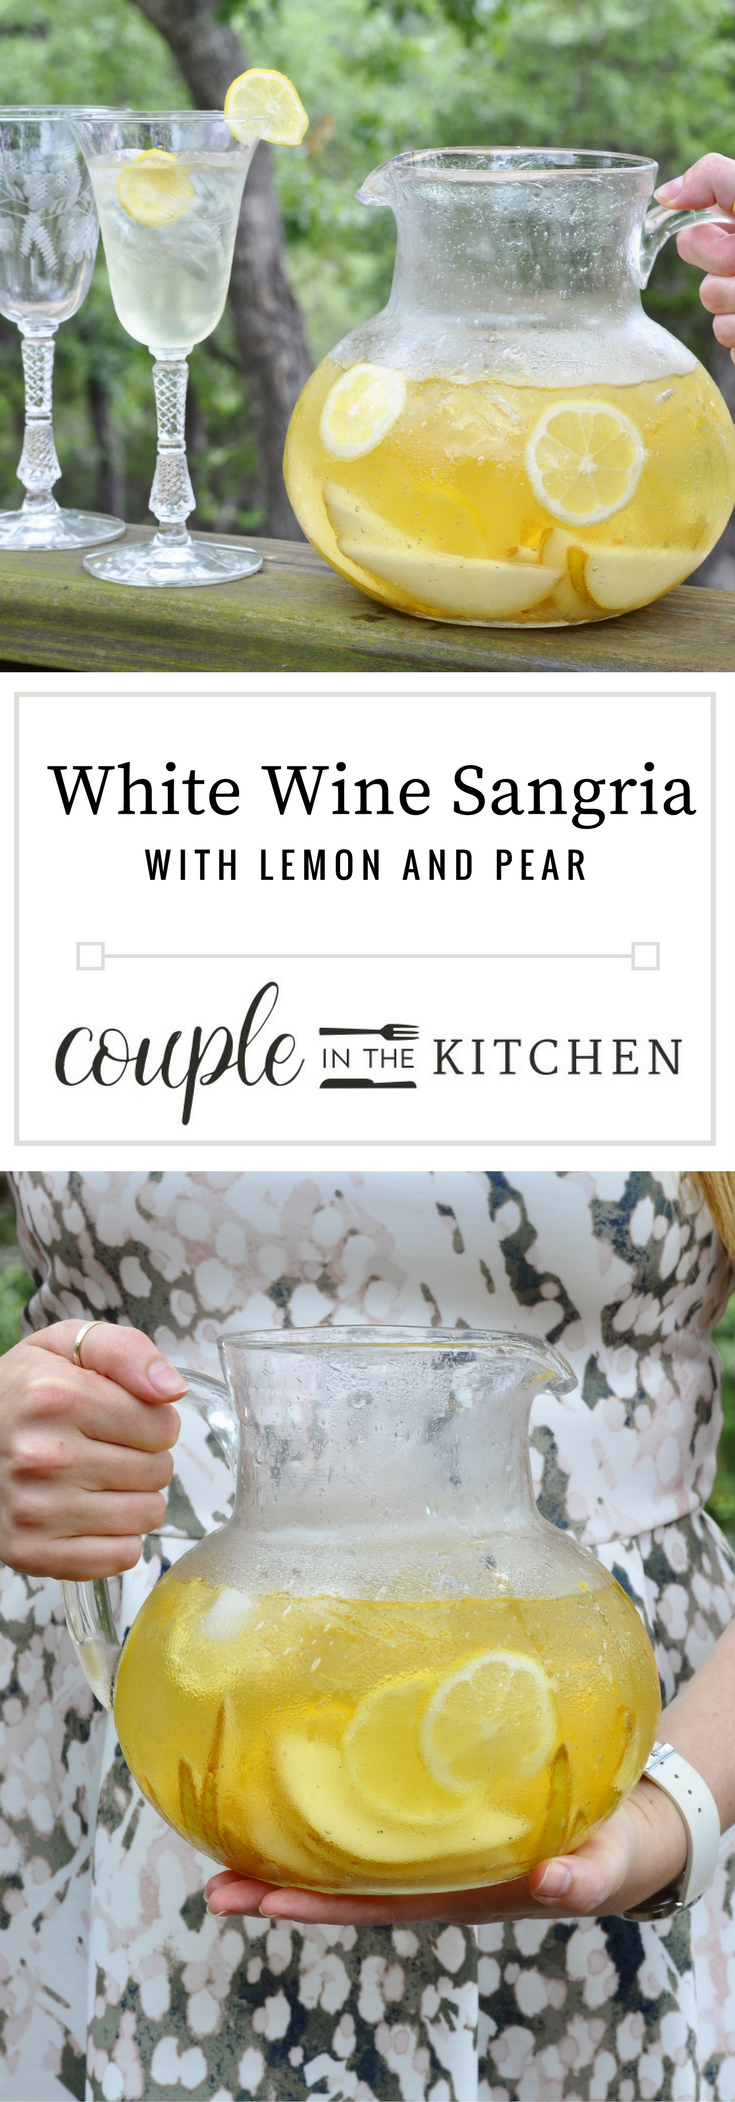 White Wine Sangria with Lemon and Pear | coupleinthekitchen.com